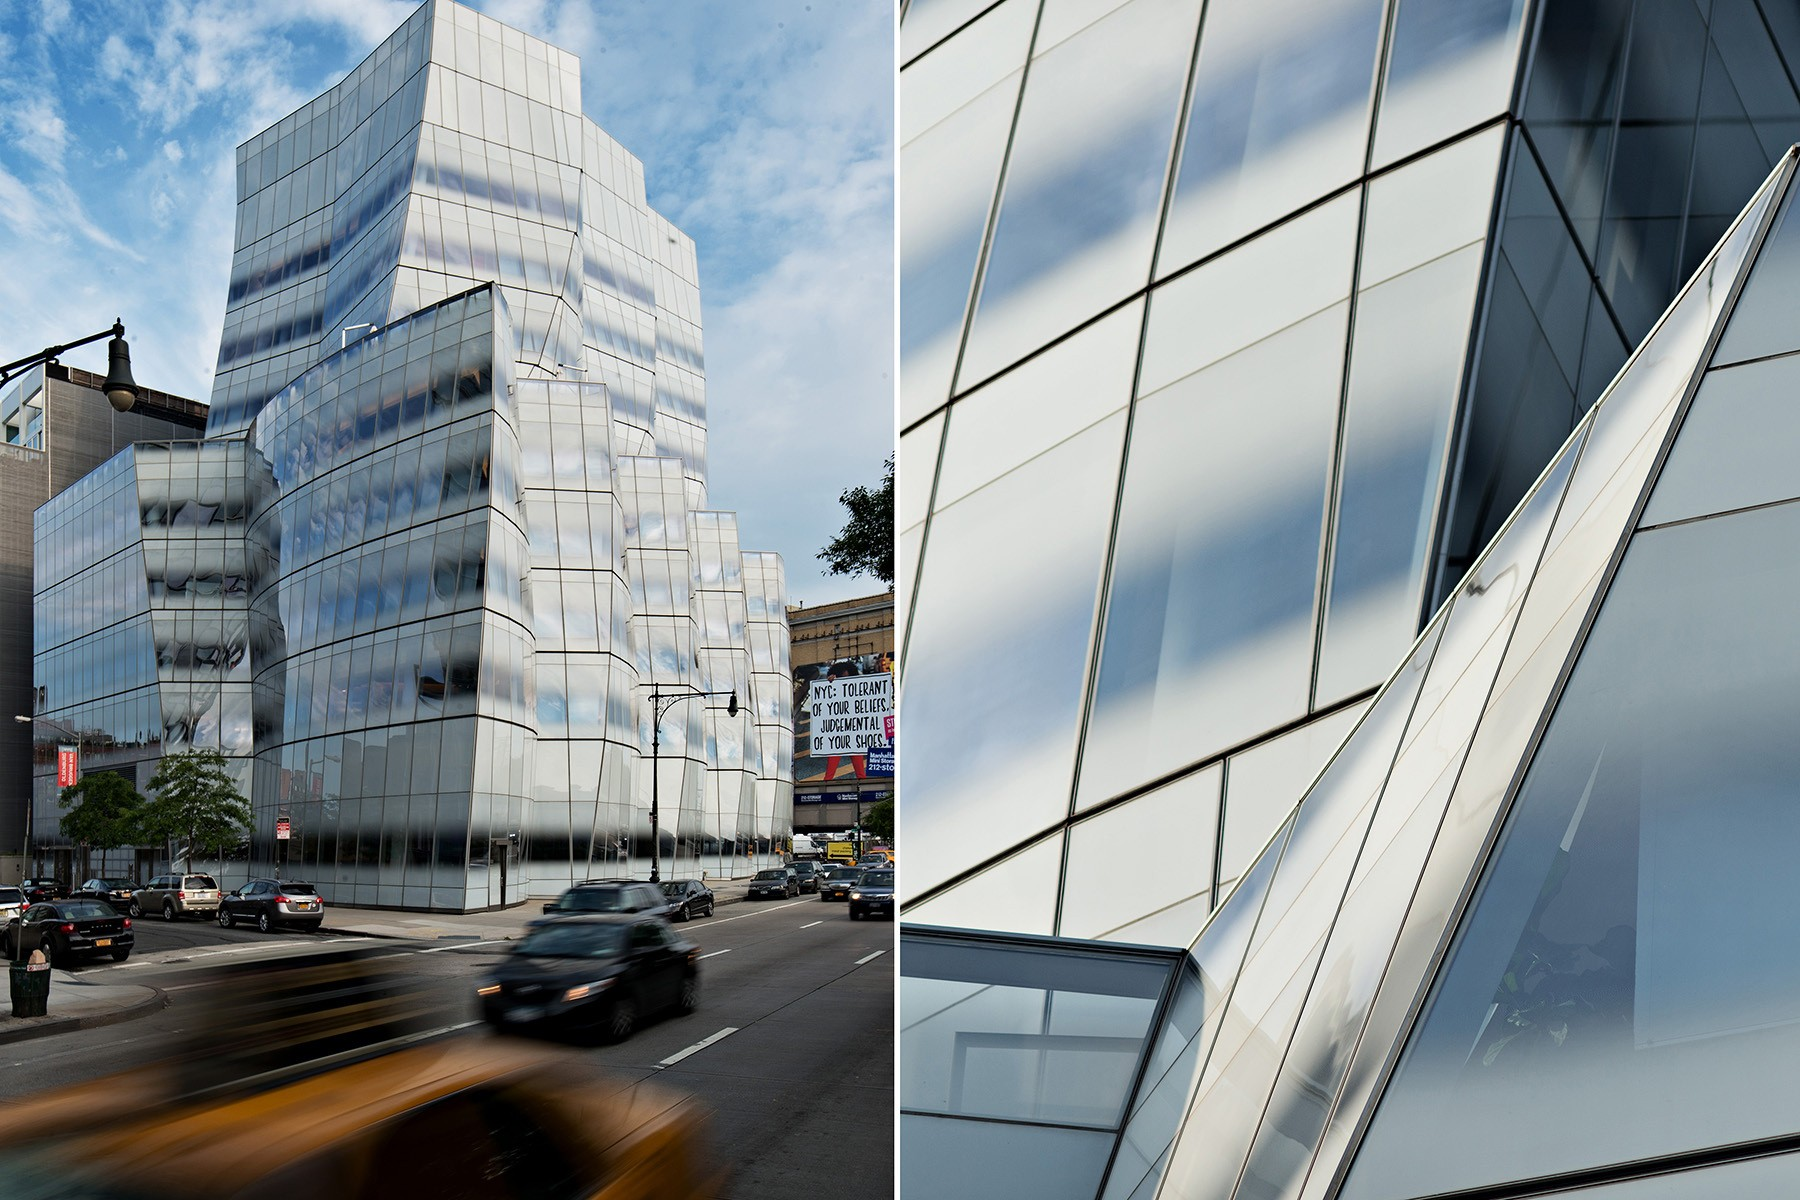 architecture photography Frank Gehry s InterActiveCorp s headquarters IAC building at the blue hour Chelsea Manhattan New York City NYC